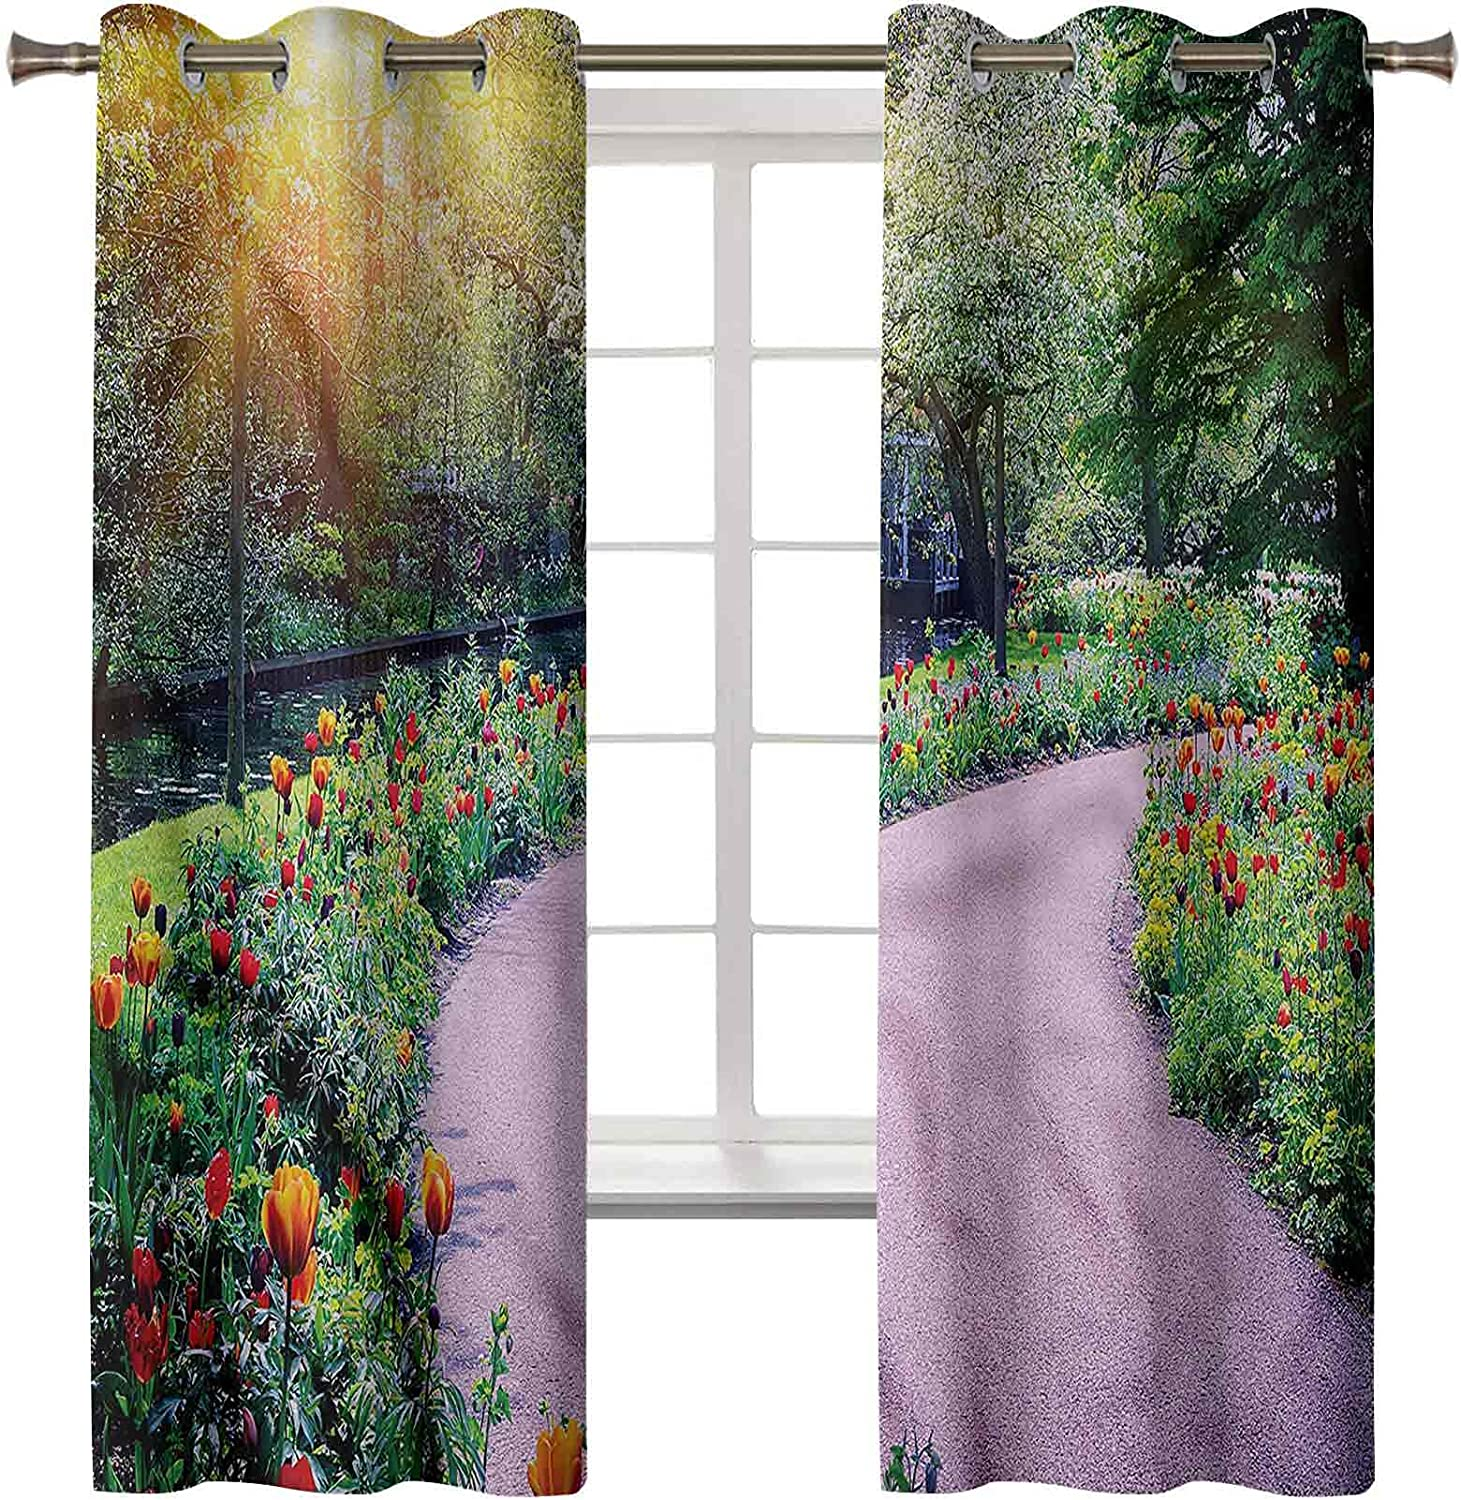 Free shipping on posting reviews Blackout Curtains for Bedroom Thermal Gard Insulated Decor Credence Home